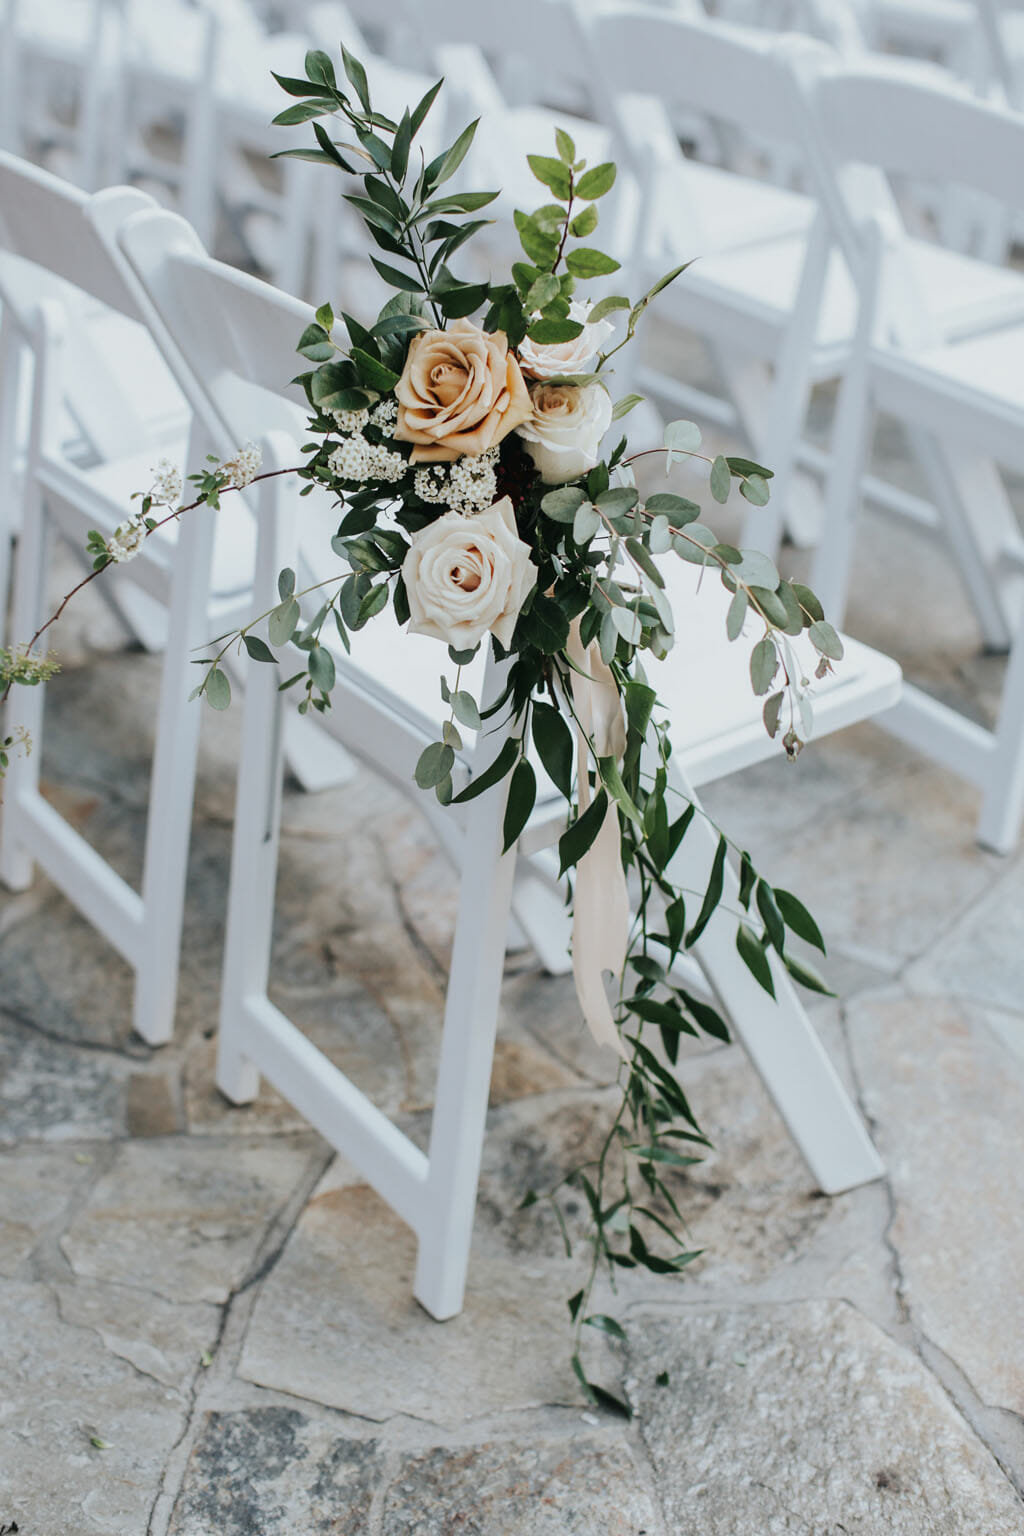 roses and greenery floral details at outdoor wedding ceremony